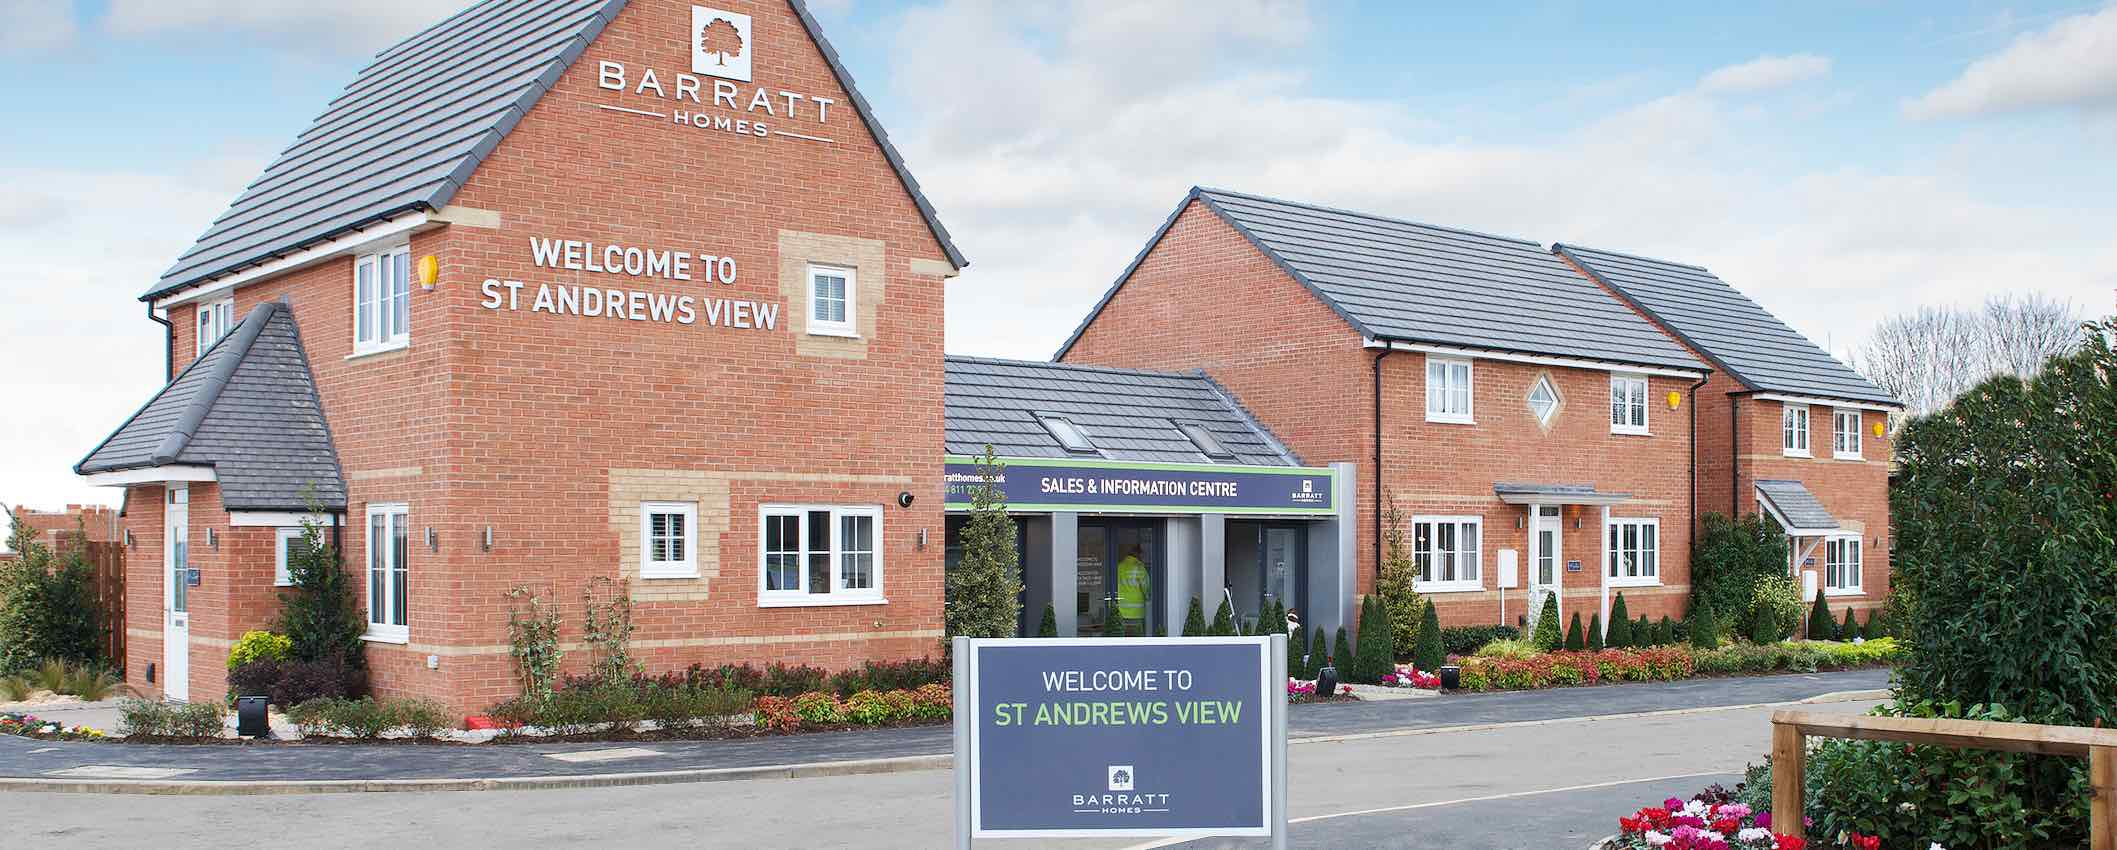 Barratt Homes and Barclays combine to launch first green mortgage for new energy efficient homes